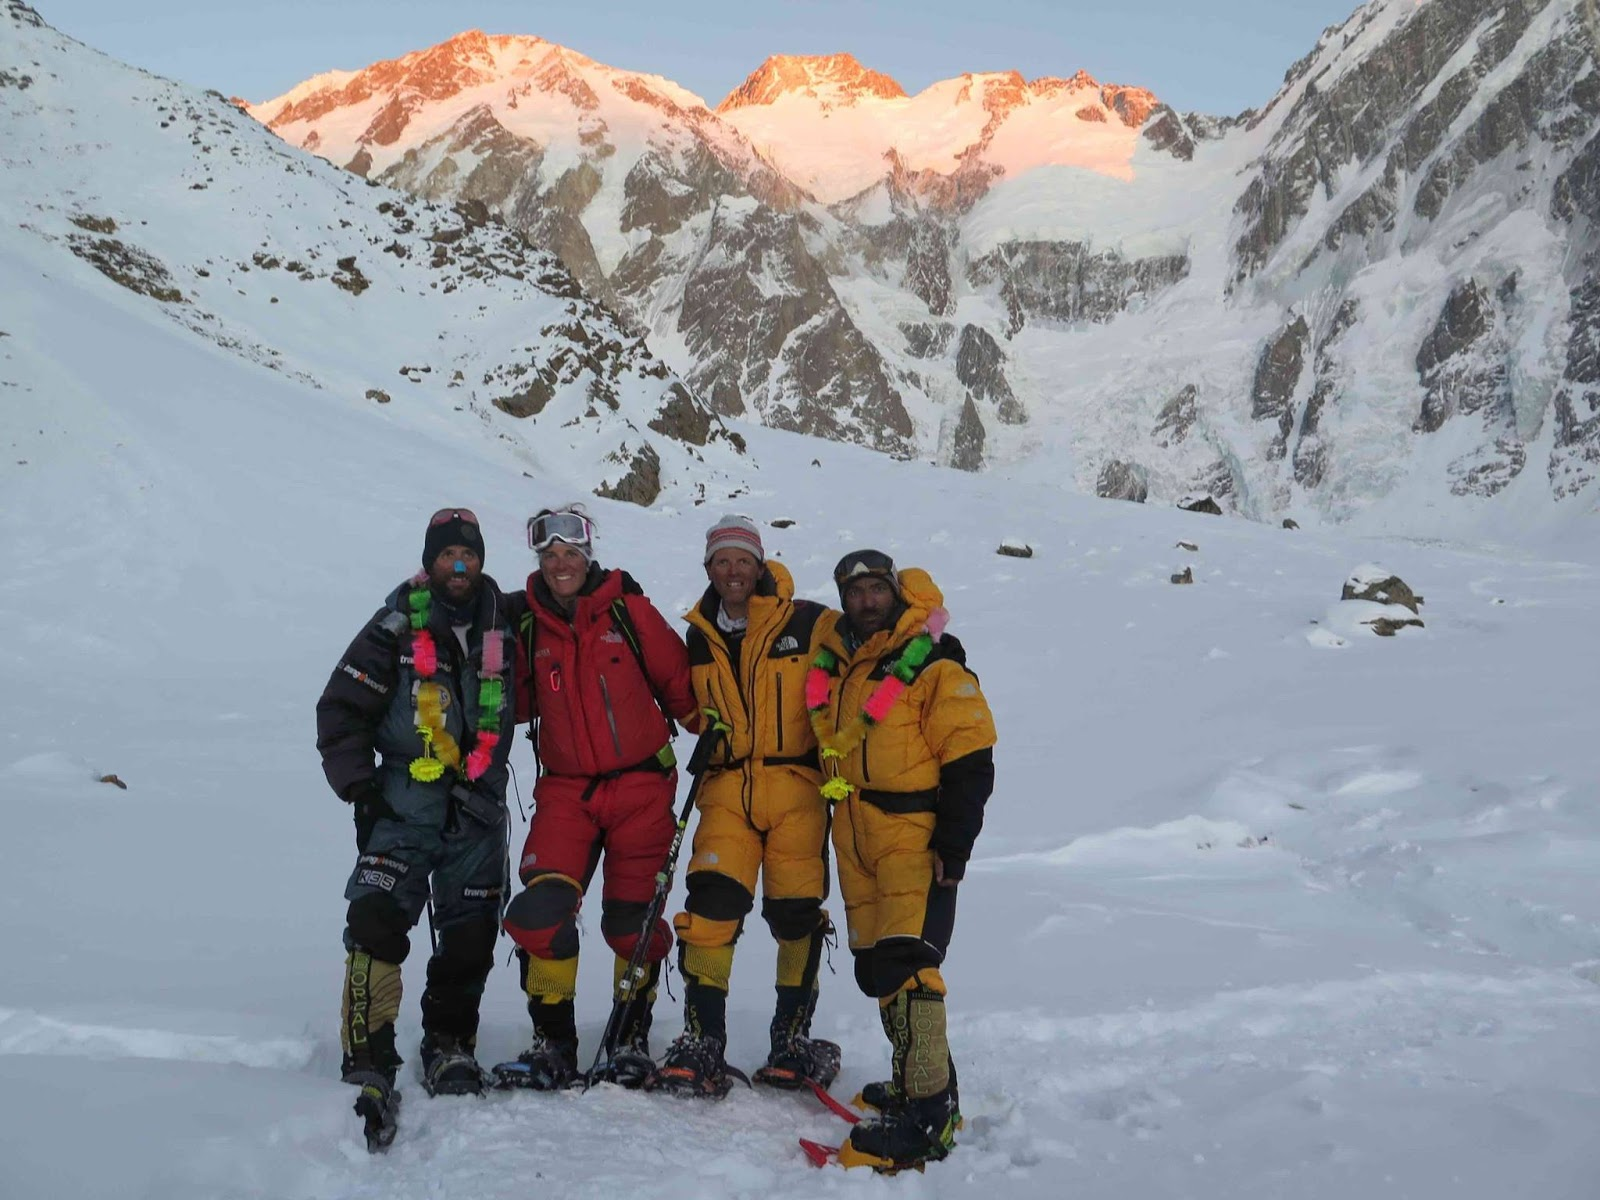 First winter ascent on Nanga Parbat